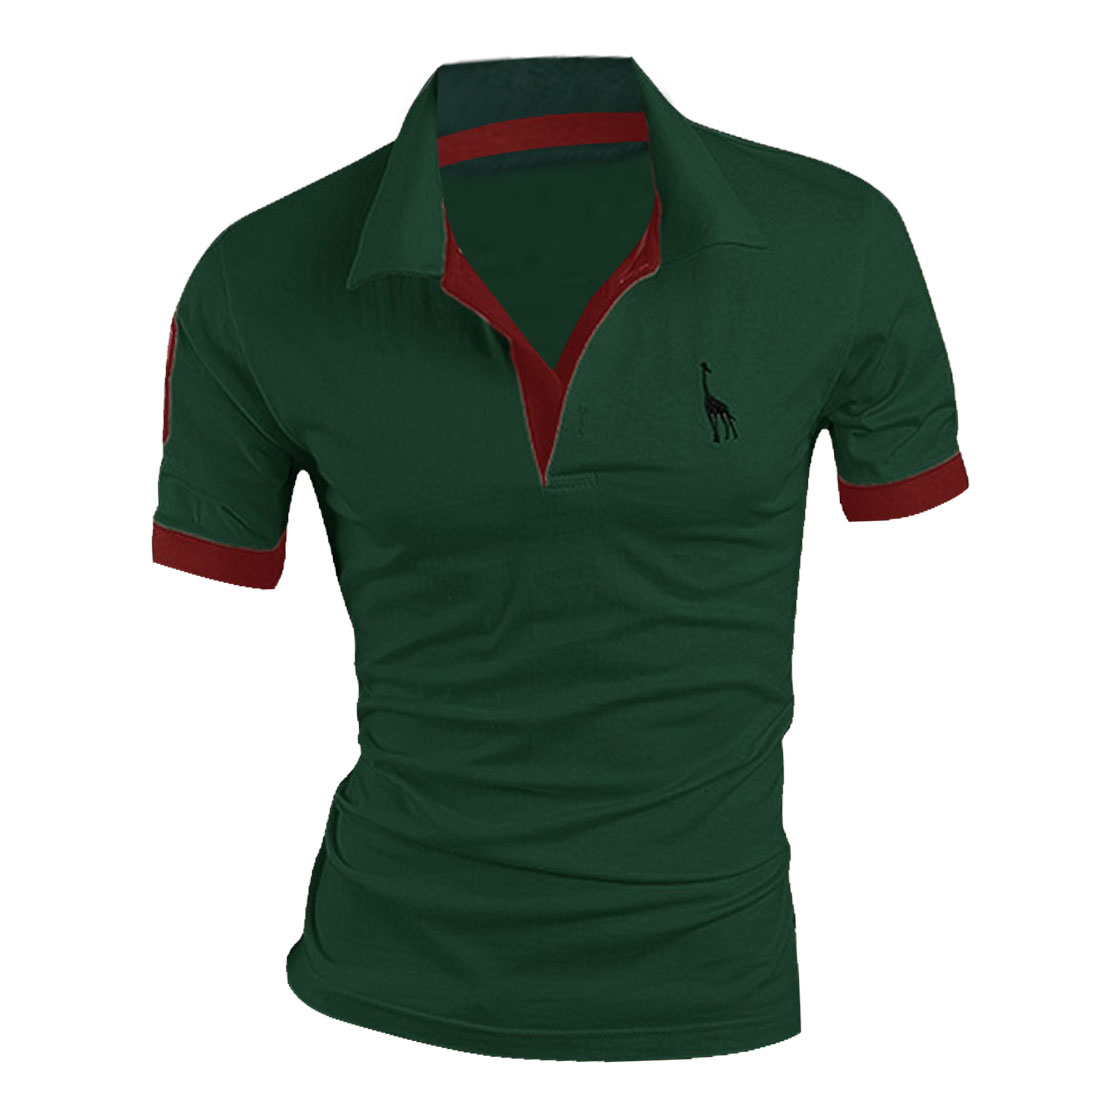 Man Korean Style Short Sleeved Point Collar Chic Shirts Green M